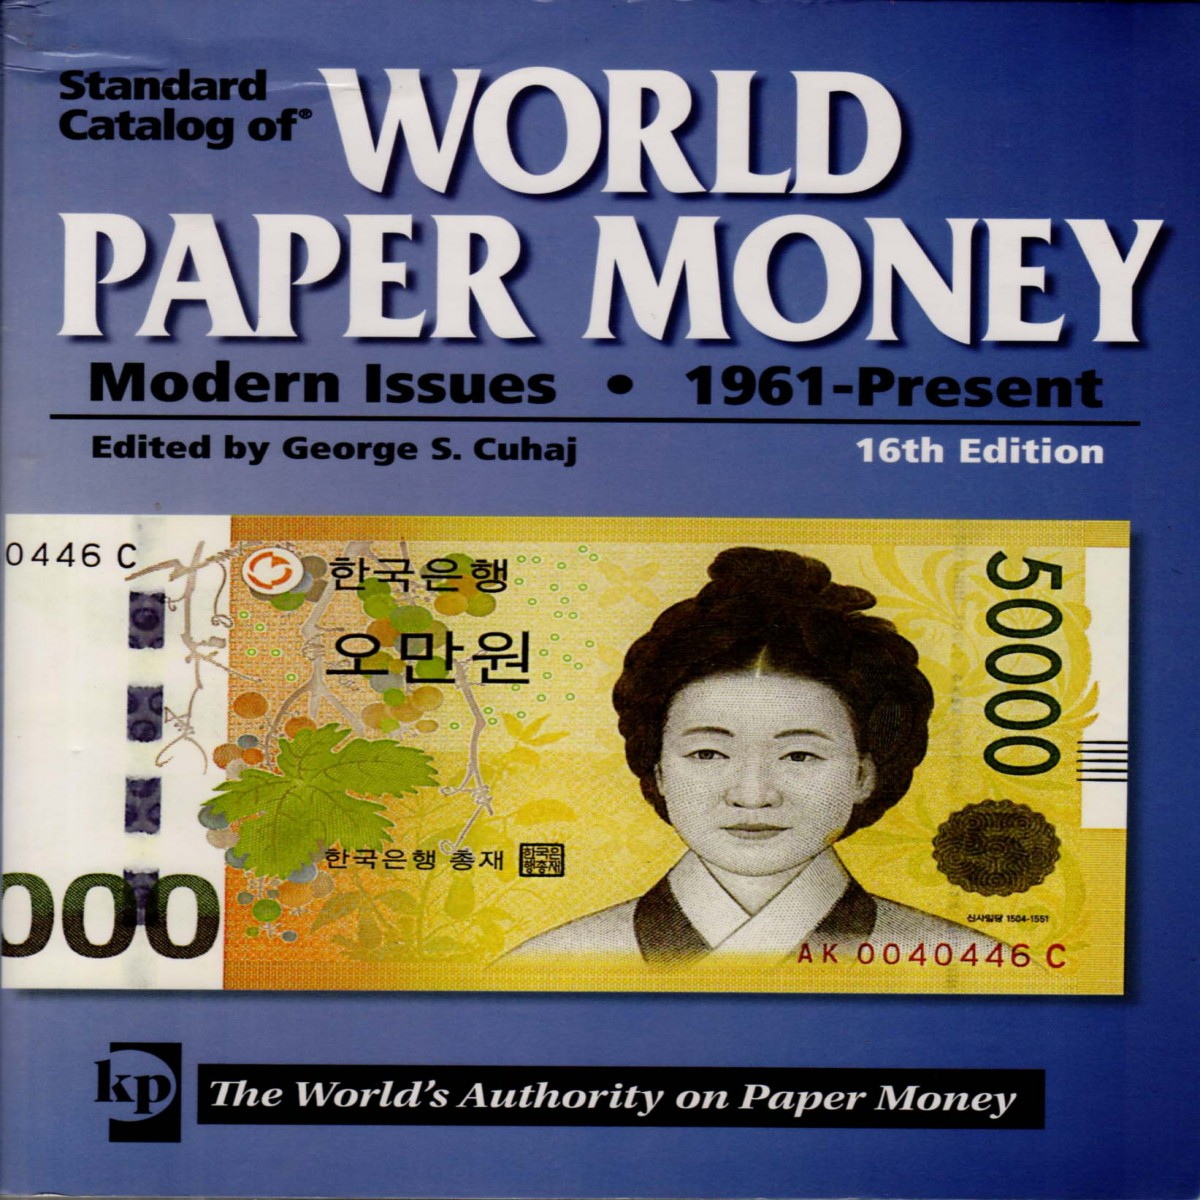 Standard Catalog of World Paper Money, Modern Issues 1961-Present, 16th Edition